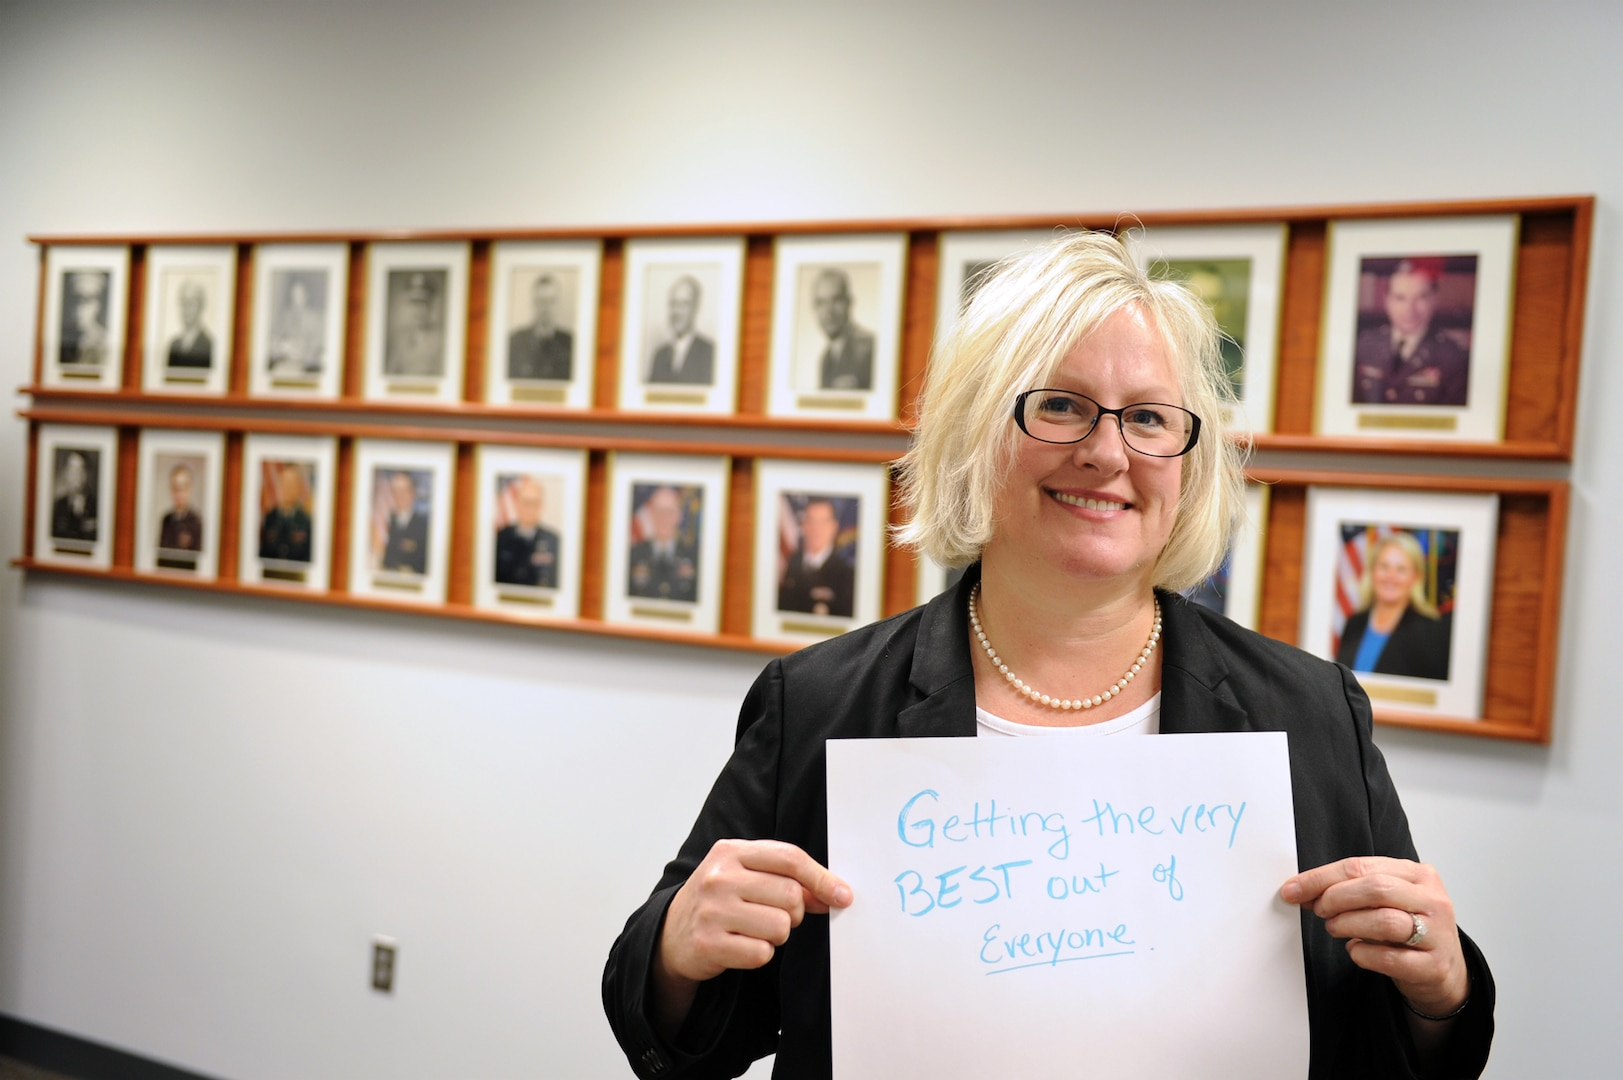 """Dr. Kathryn Morici, new director of DIA's National Center for Medical Intelligence, showcases her answer to the question """"What does Women's History Month mean to you?"""" She is standing in front of the wall highlighting center directors, of which she is the first female and second civilian."""